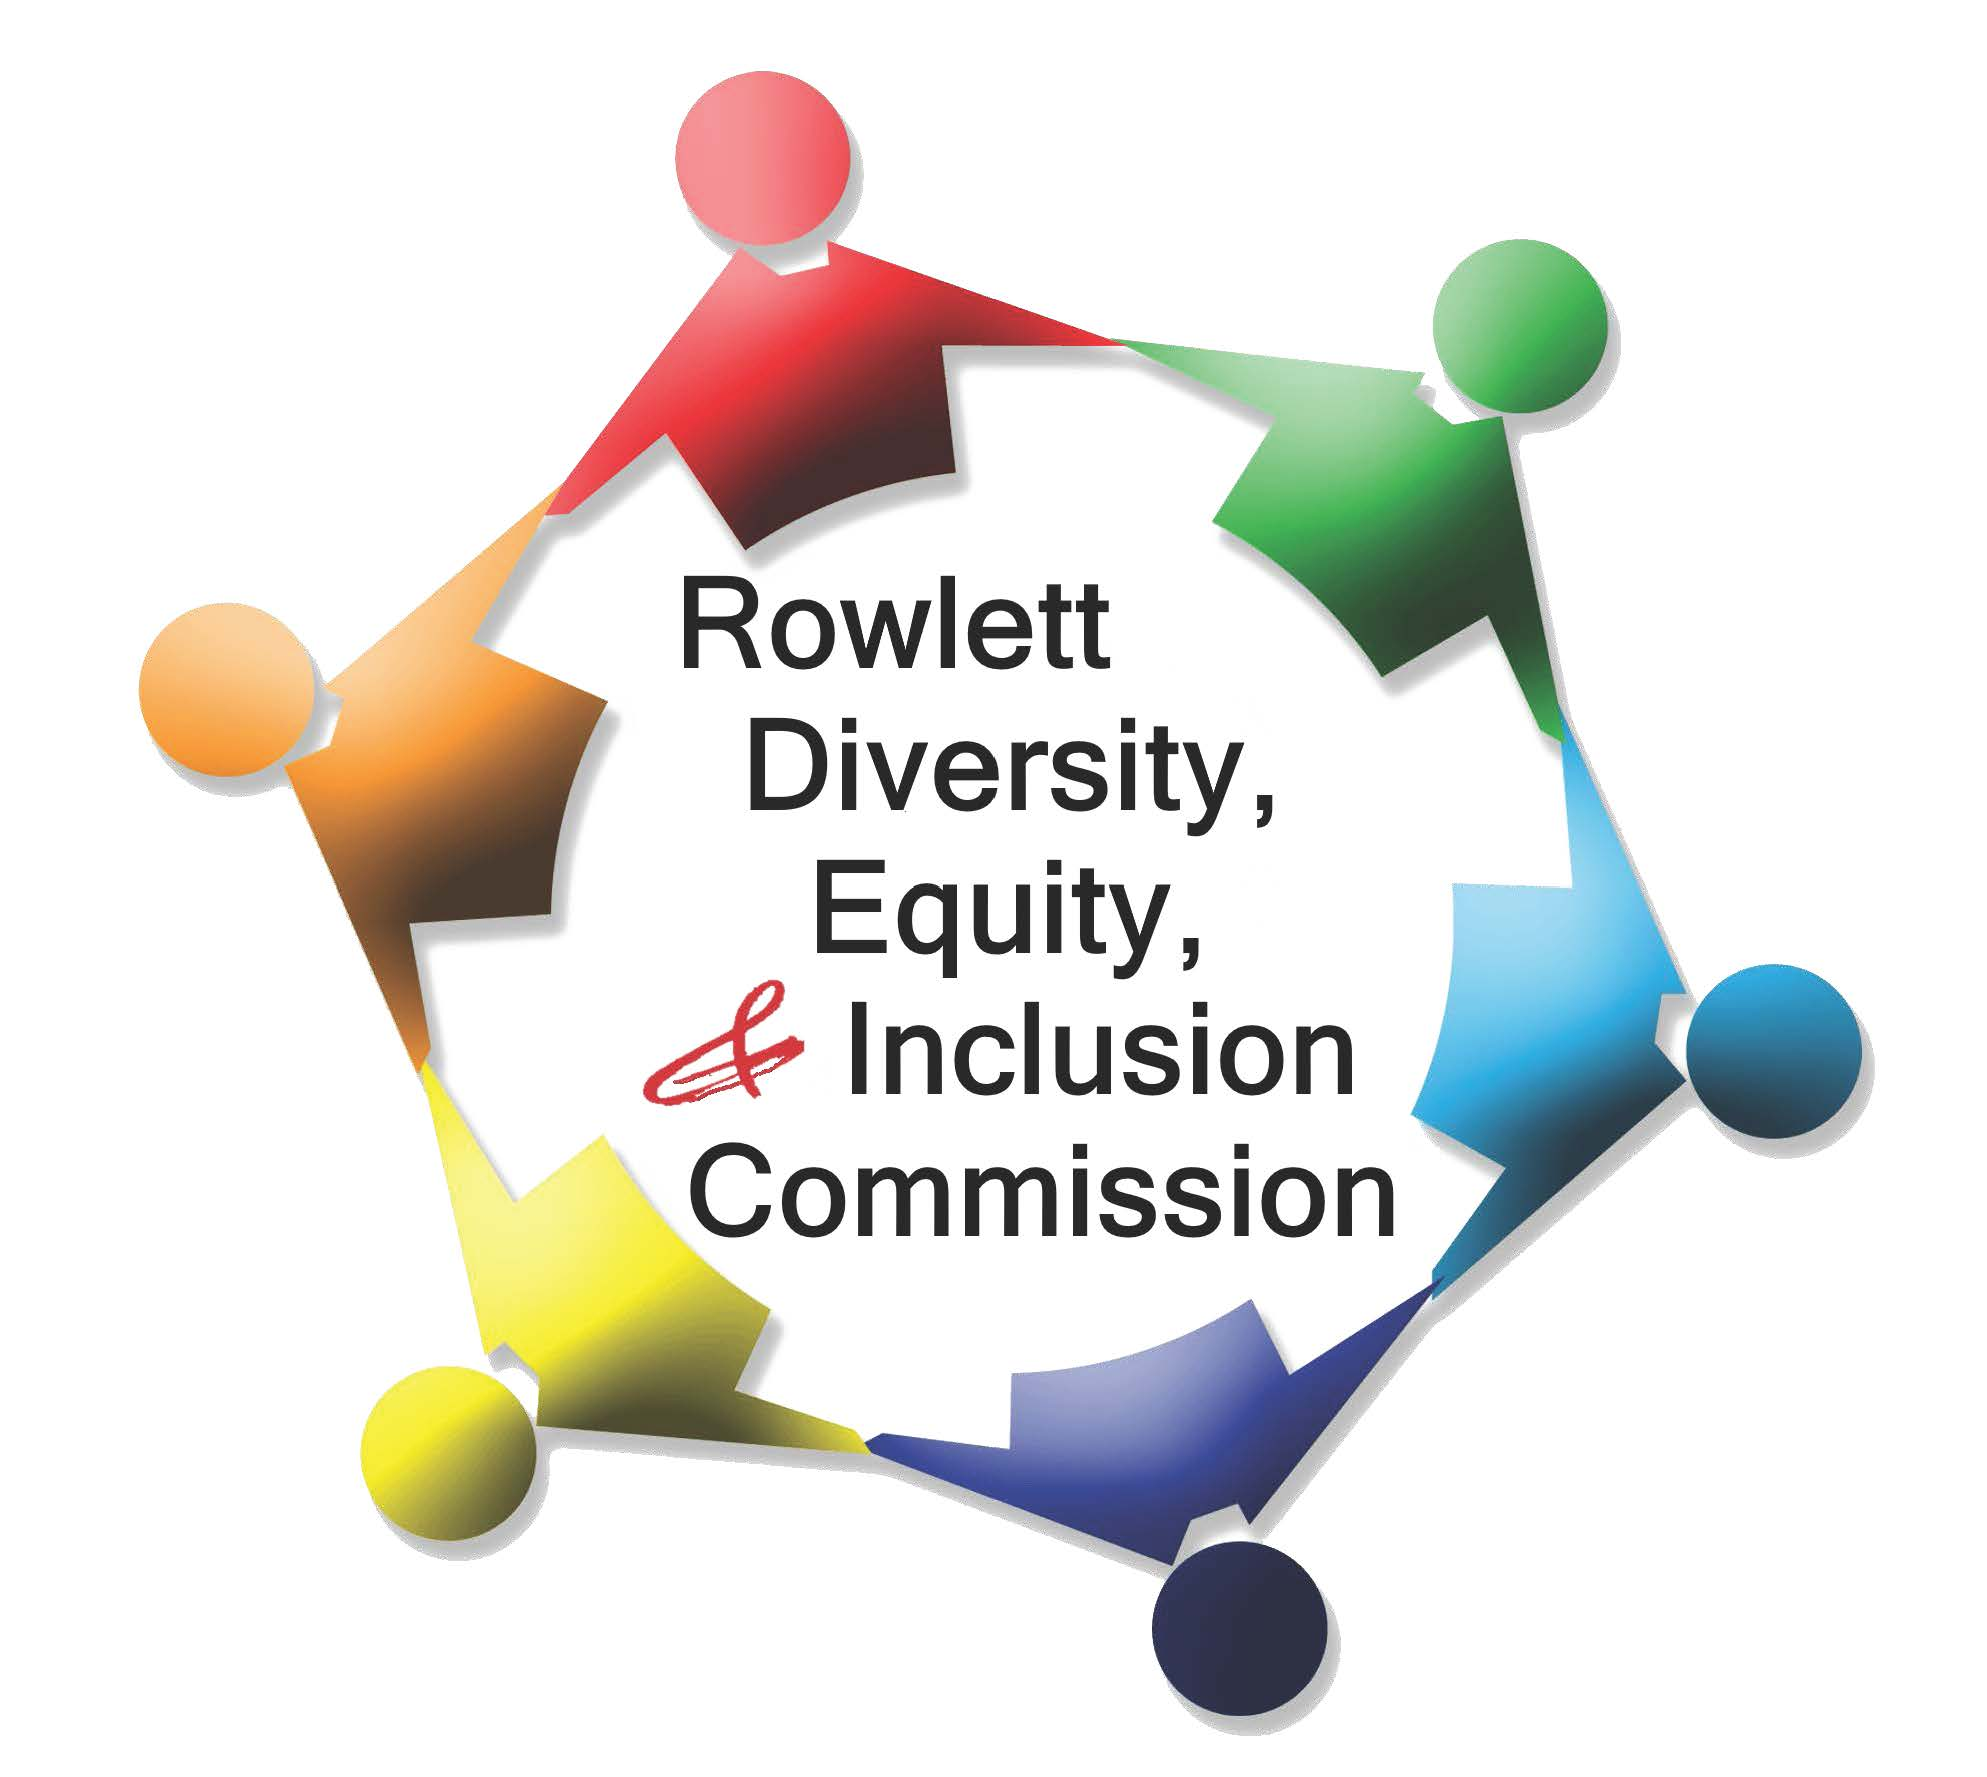 colorful representation of people holding hands text: Rowlett Diversity and Inclusion Commission